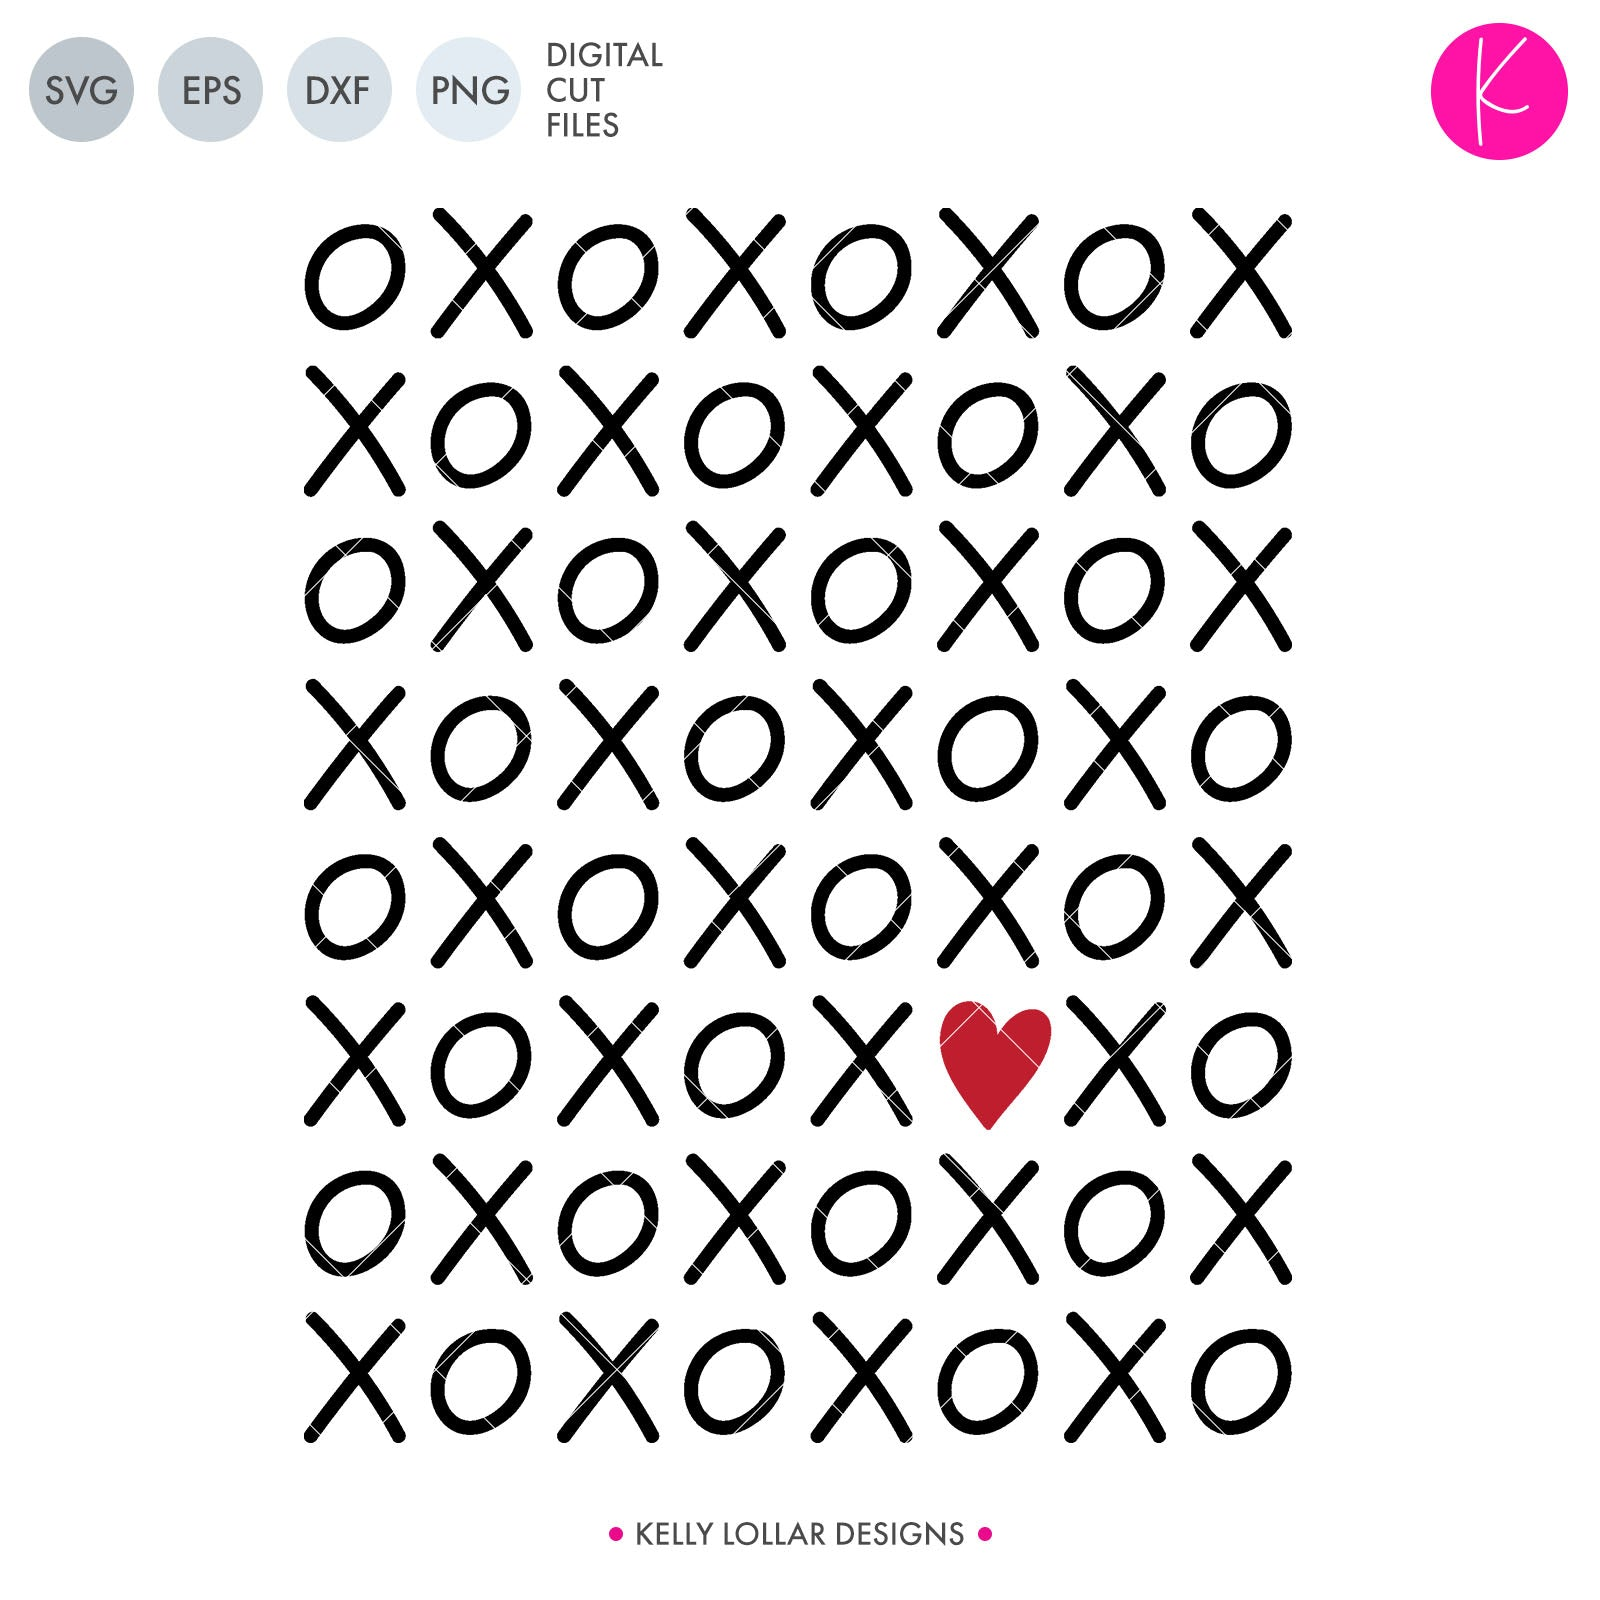 Hugs & Kisses | SVG DXF EPS PNG Cut Files Tic Tac Toe Style Rectangular X and O Grid with Heart for Valentine's Shirts and Home Decor | SVG DXF PNG Cut Files 1 file for each format welded in